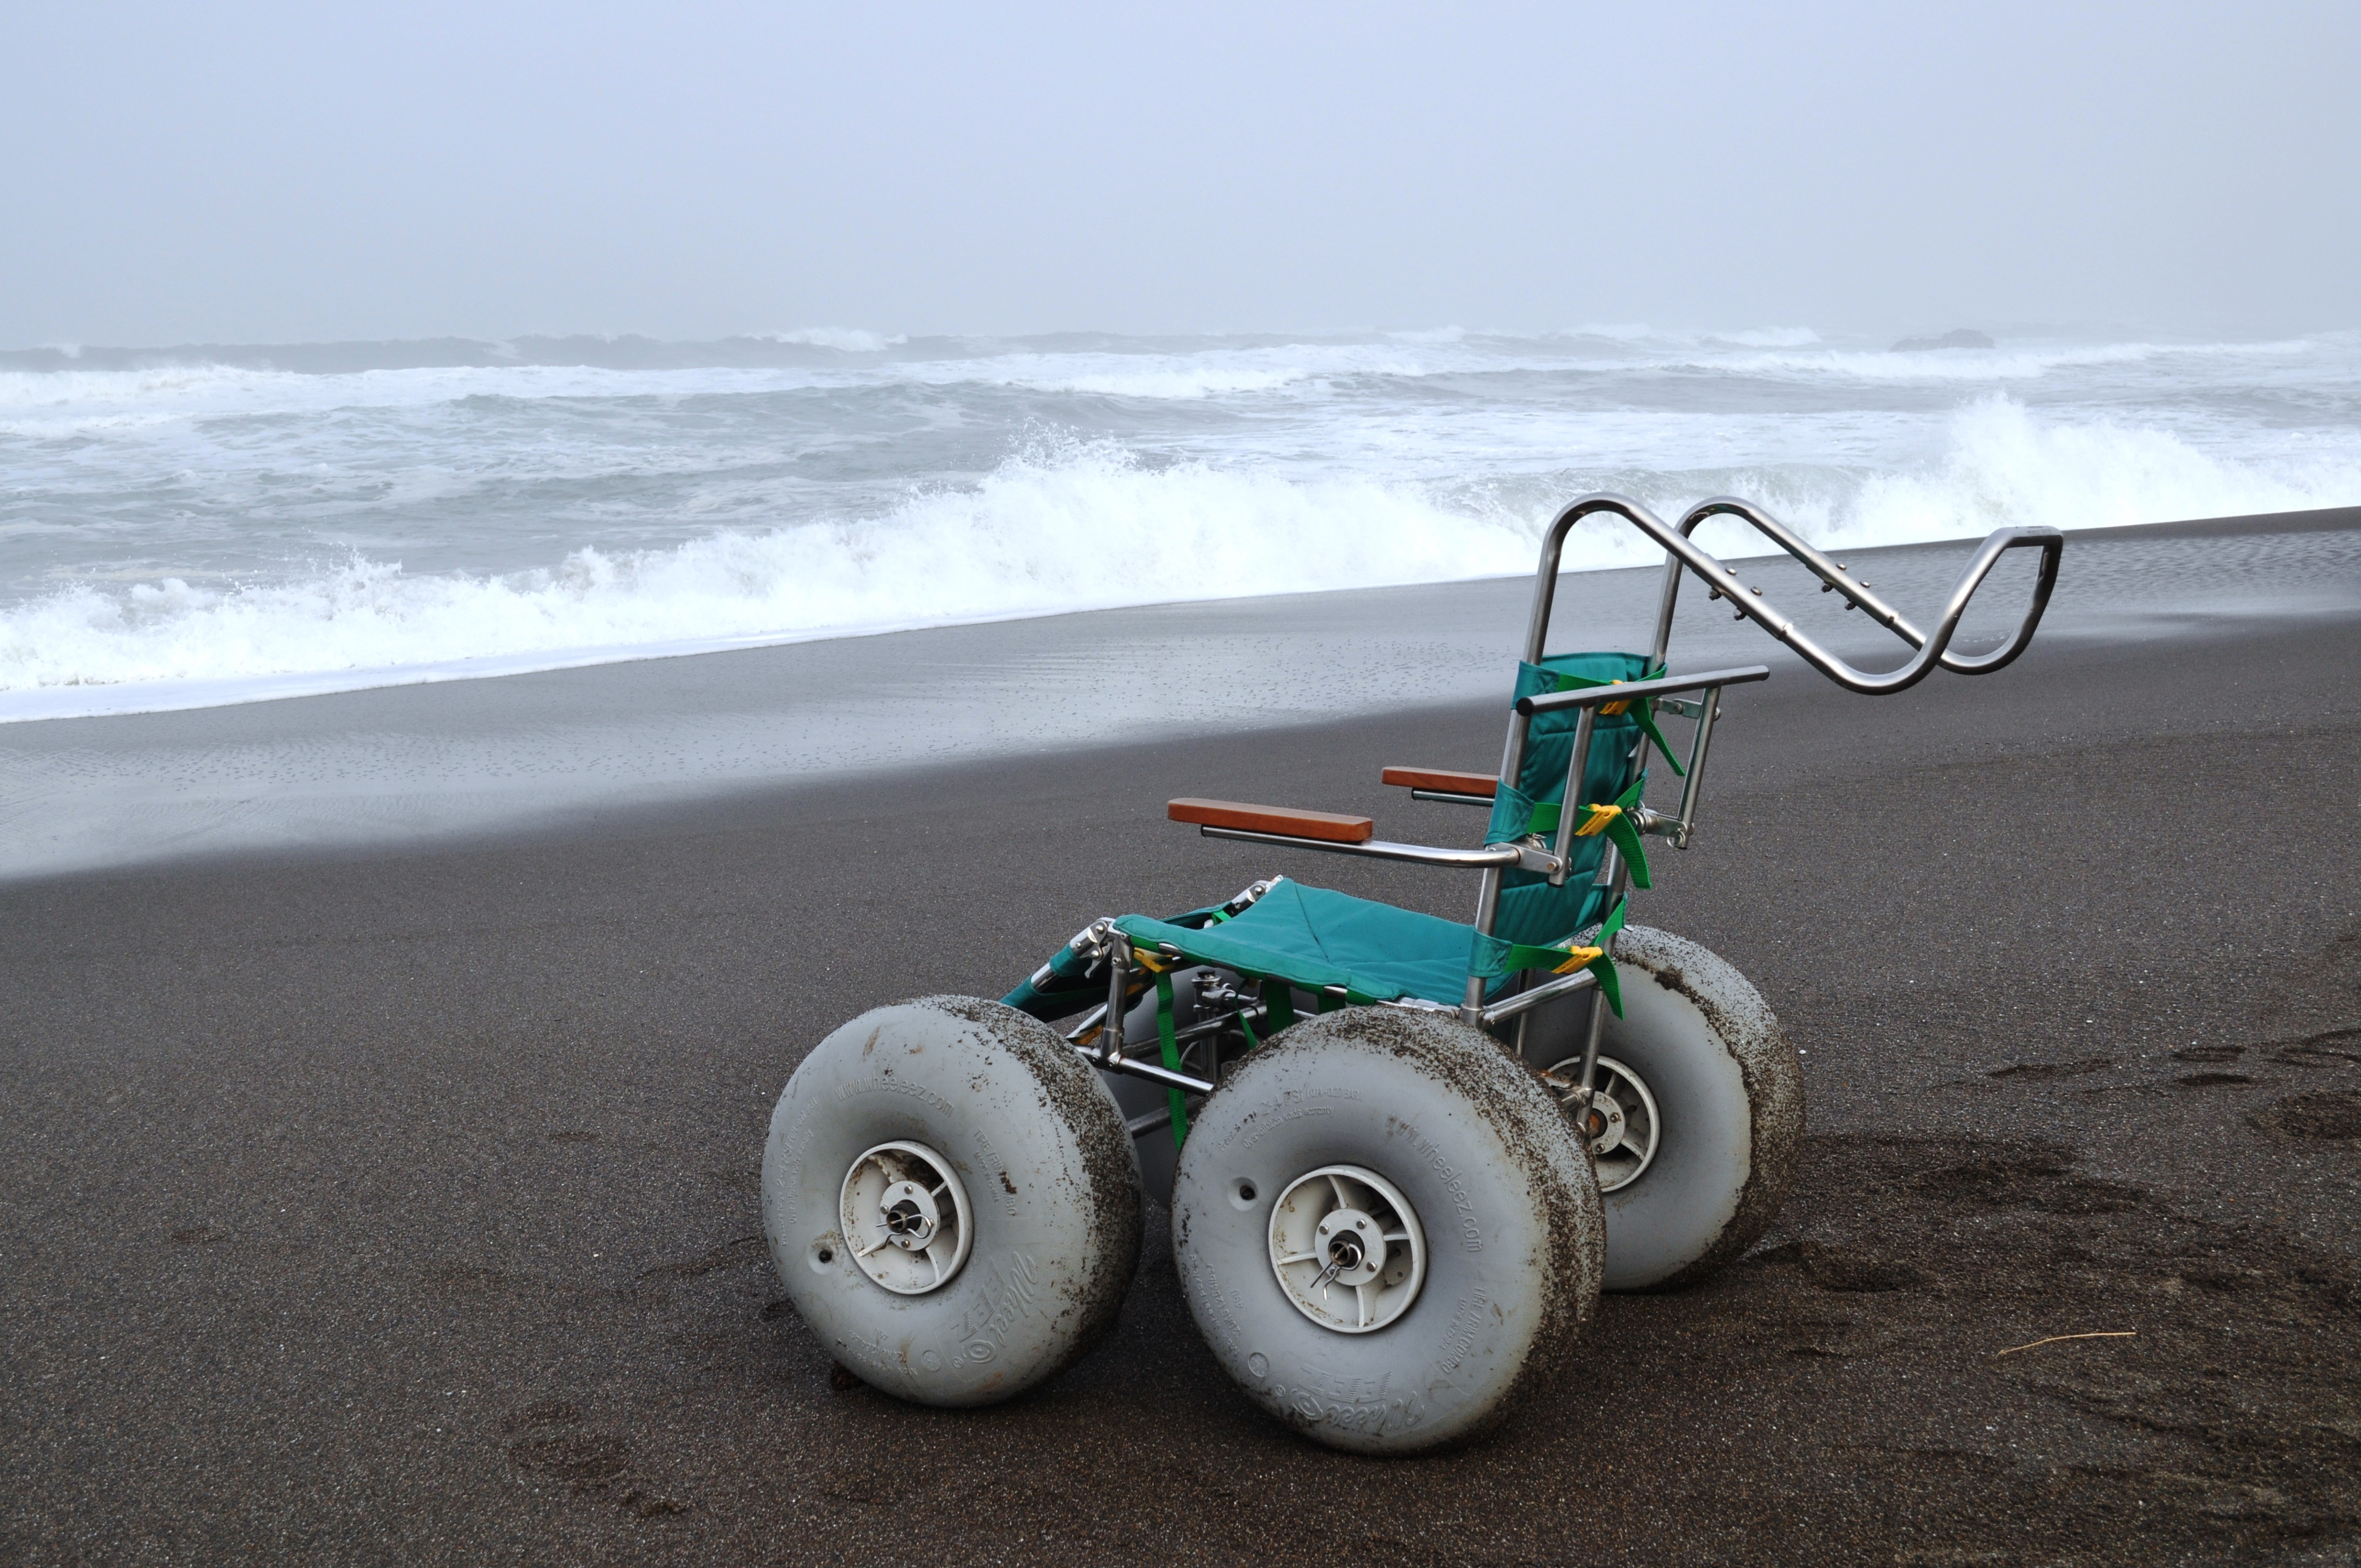 Beach Wheelchair Image